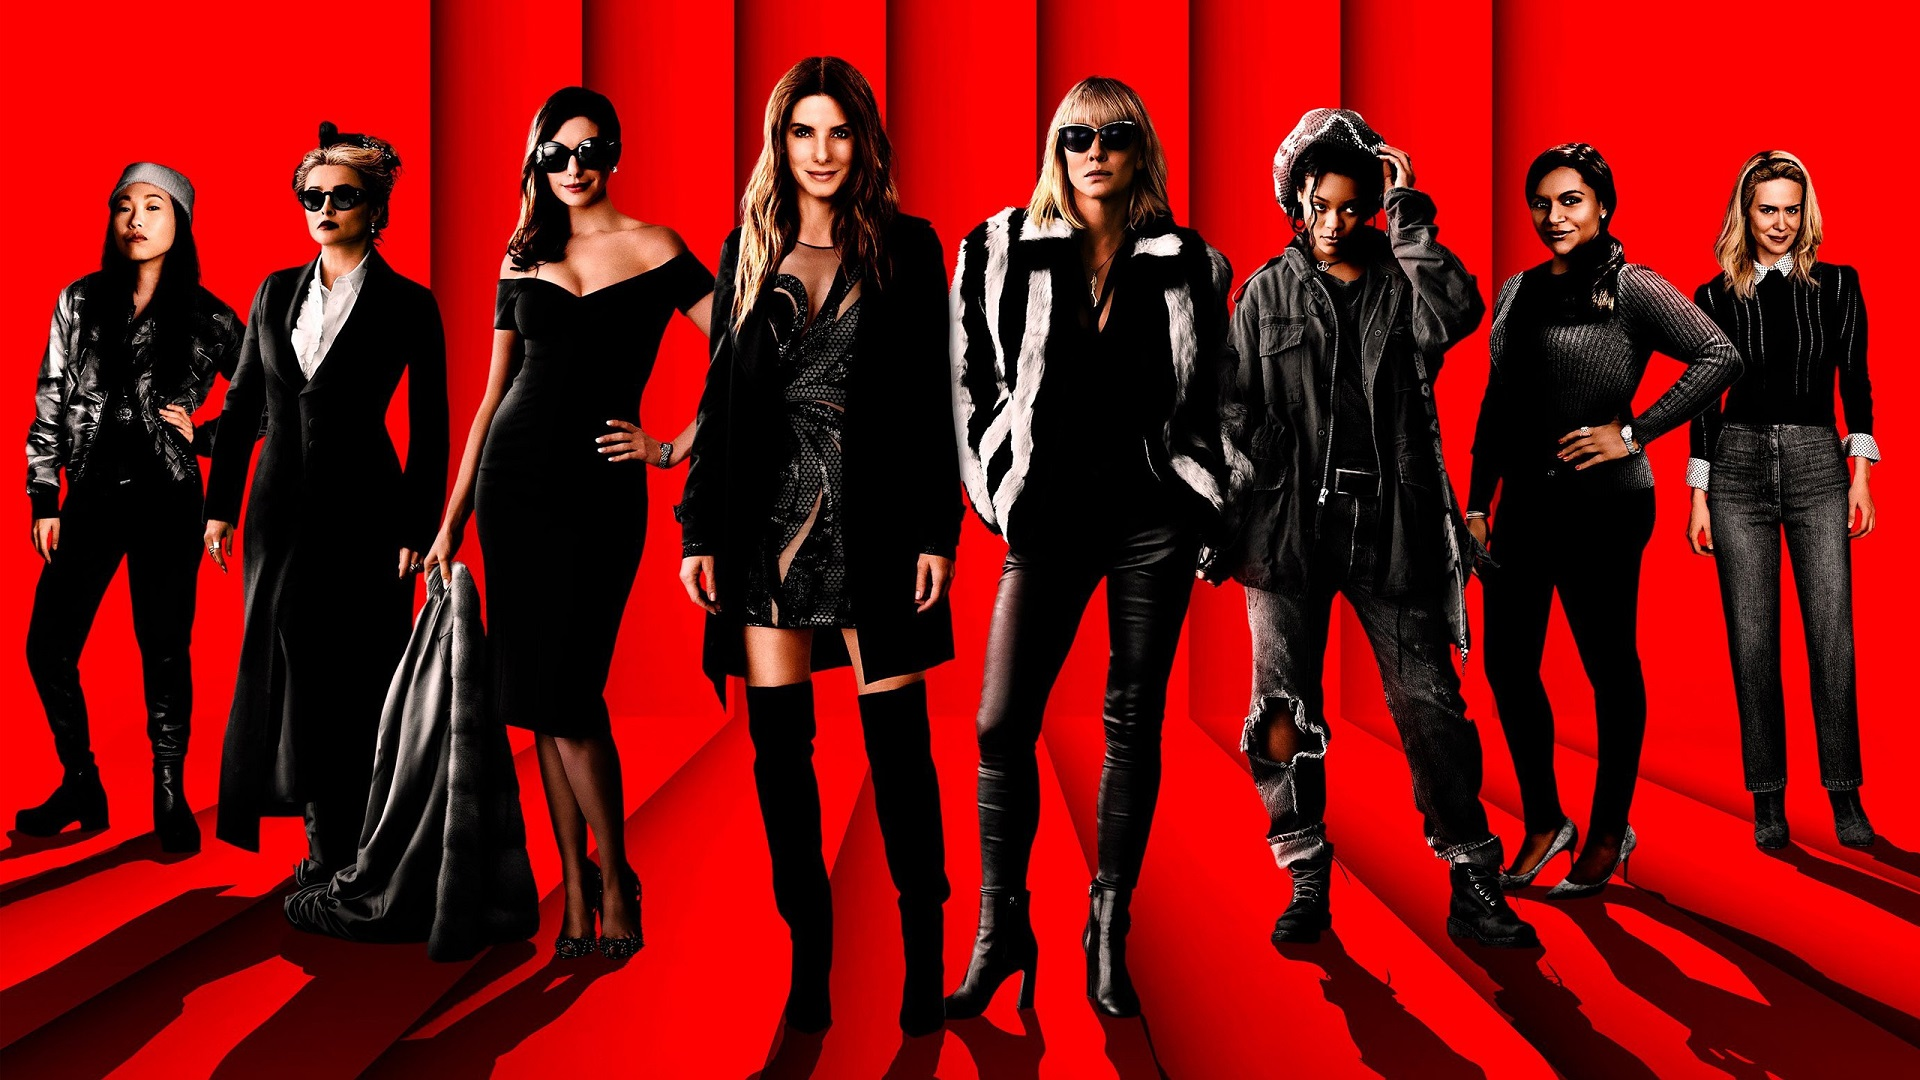 oceans 8 movie wallpaper